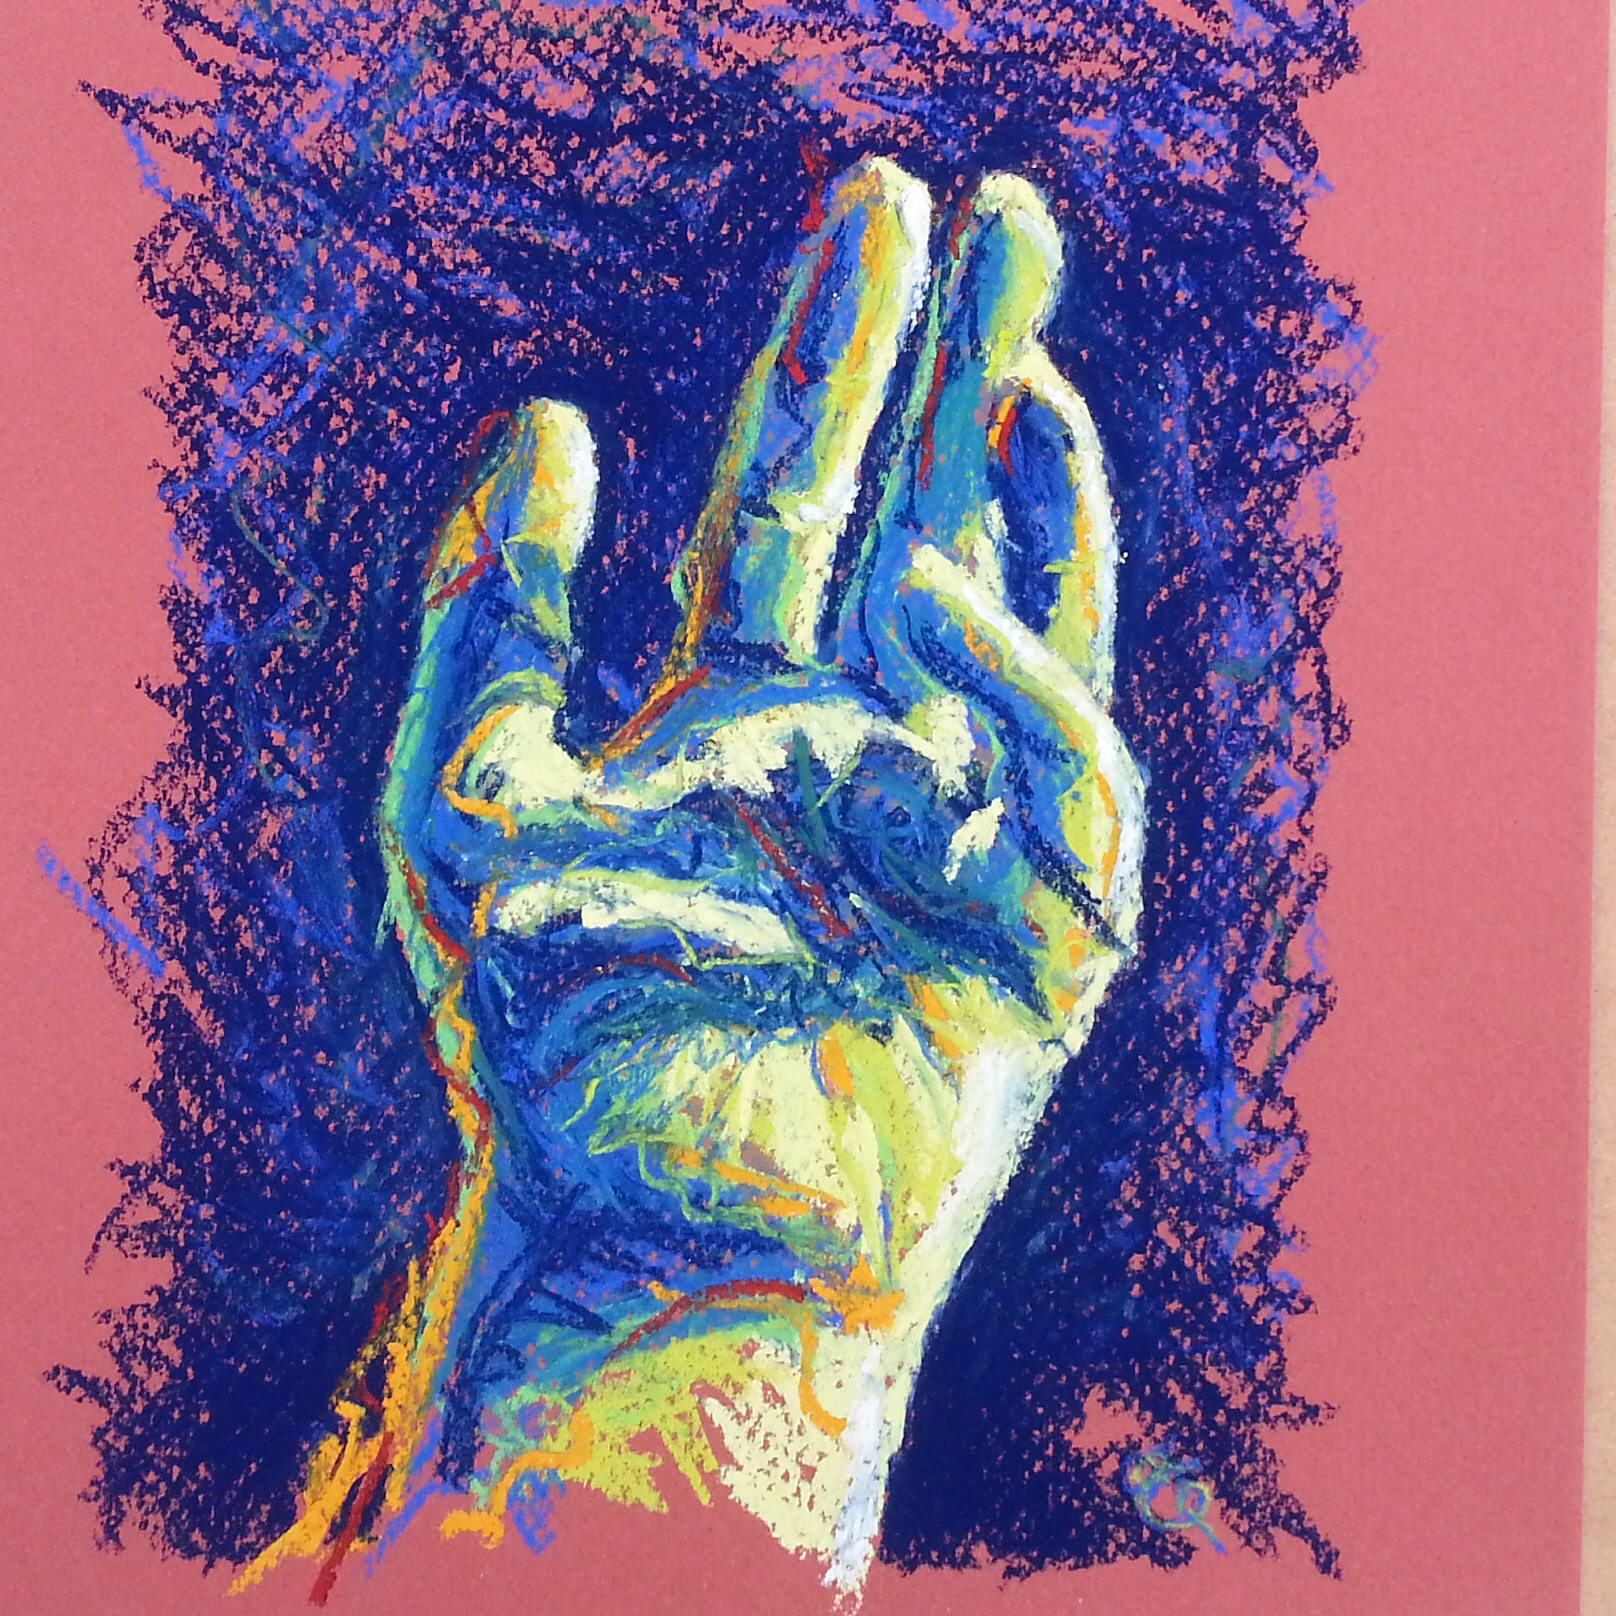 The artist's hand in pastel